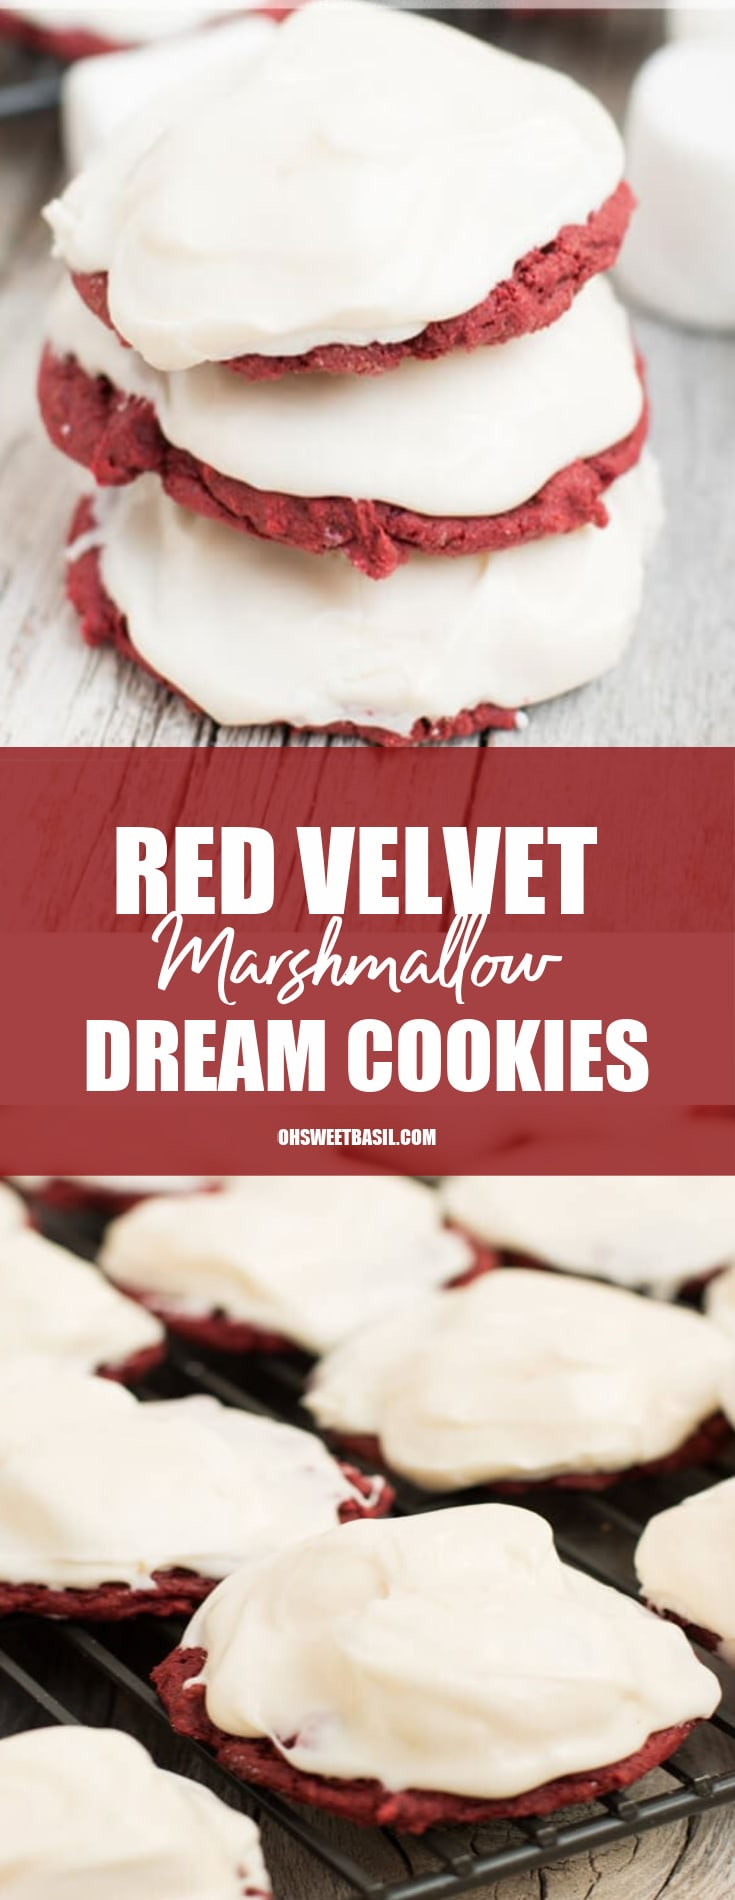 A stack of red velvet marshmallow dream cookies